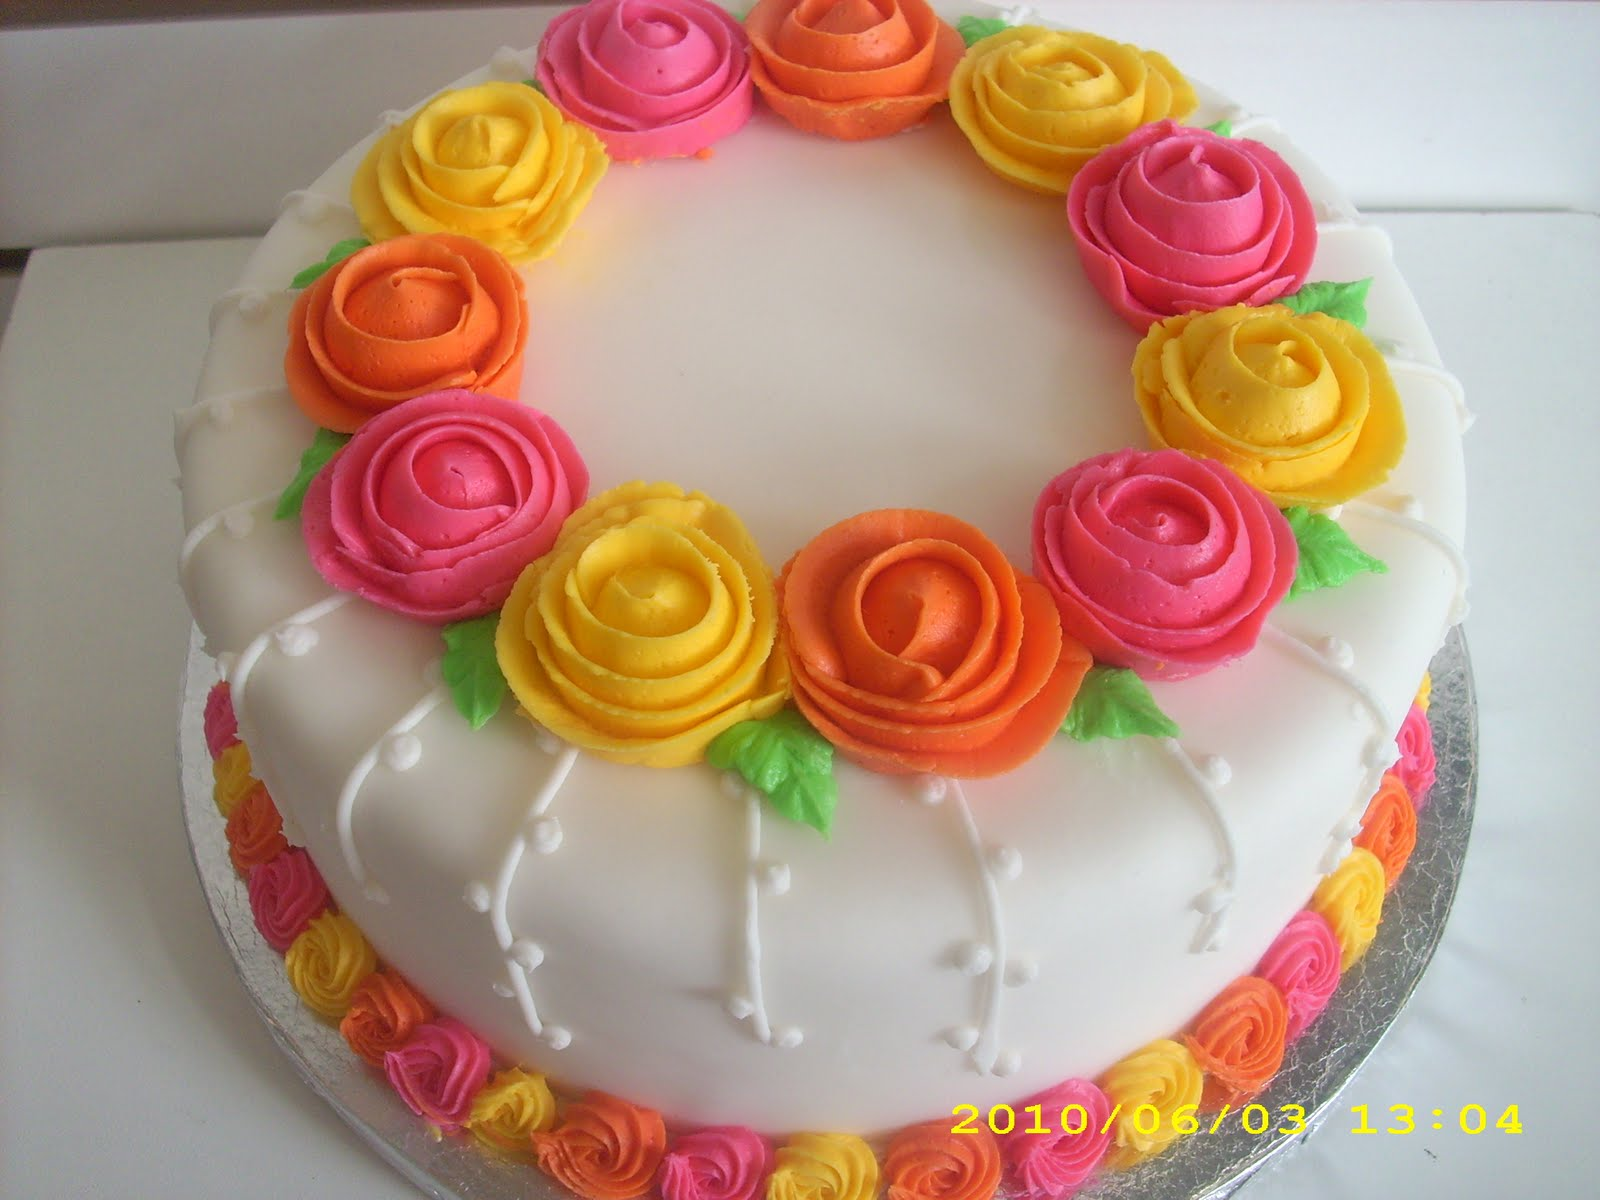 Cake Decorating Icing For Flowers : Cake-A-Thon: Decorating Basics Wilton Method Course